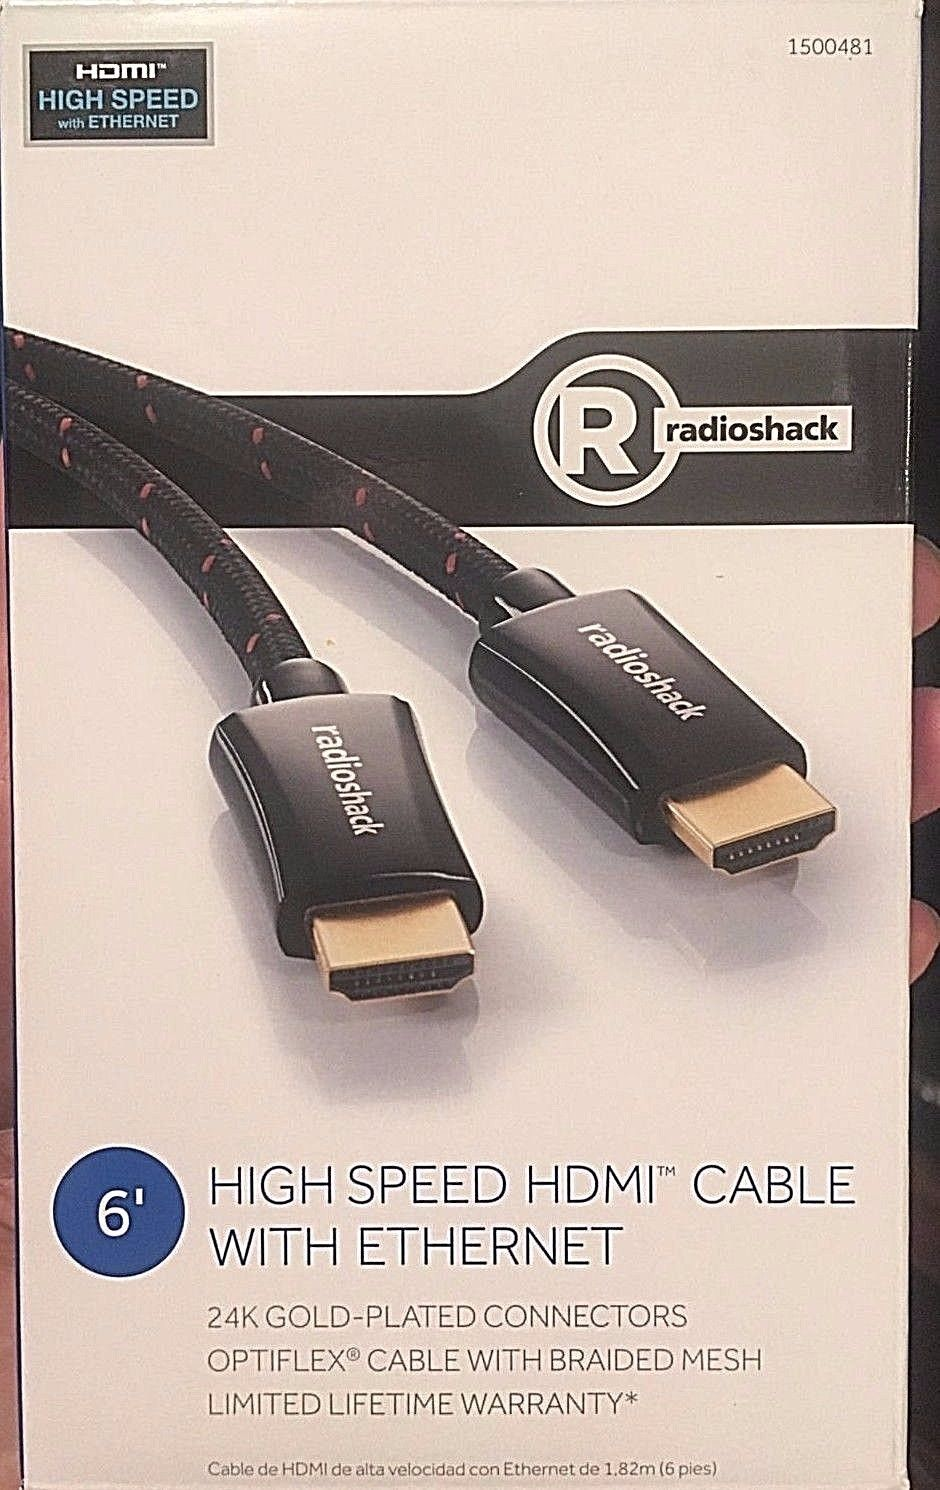 HDMI Cable 6 FT - Braided Cord High Speed HDMI w/Ethernet - Gold Plated